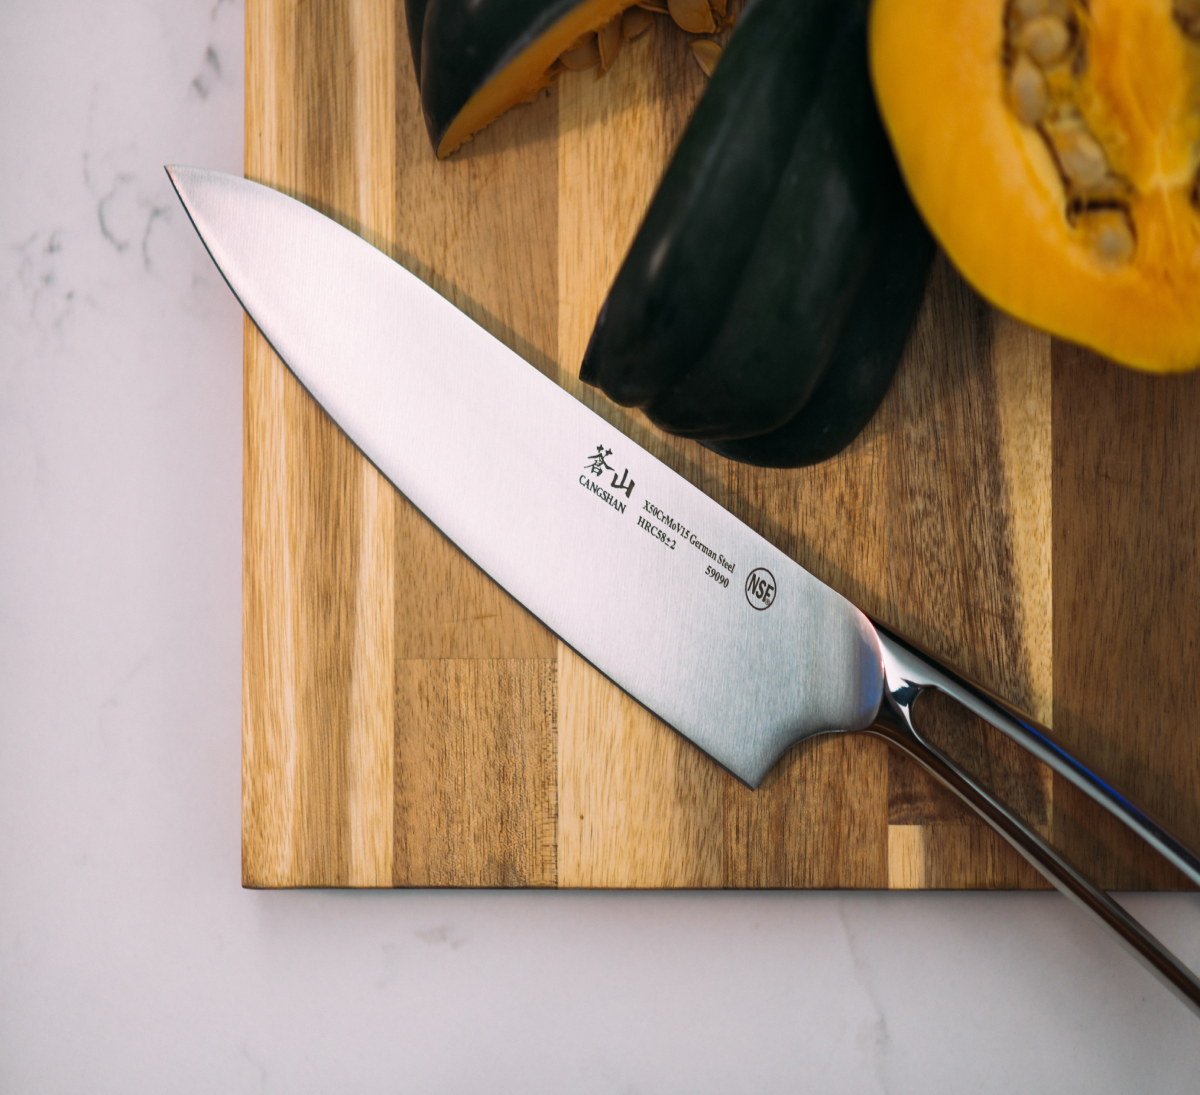 Best Foreign Chefs Knife Japanese